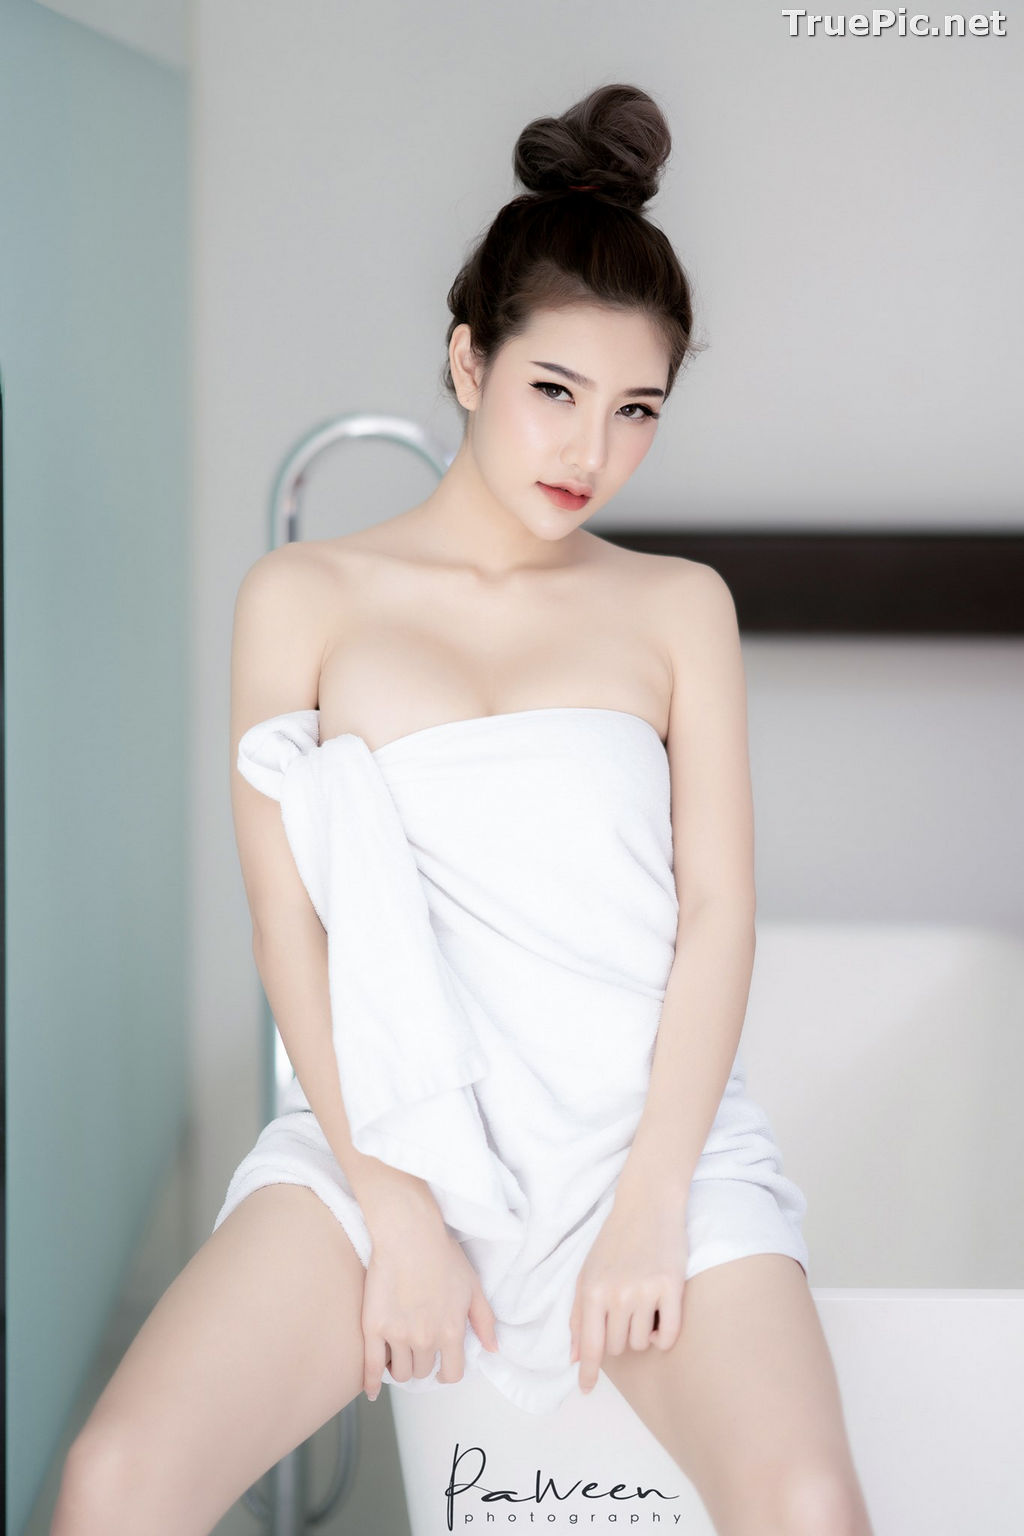 Image Thailand Model - Atittaya Chaiyasing - Take Shower After a Nice Day - TruePic.net - Picture-3